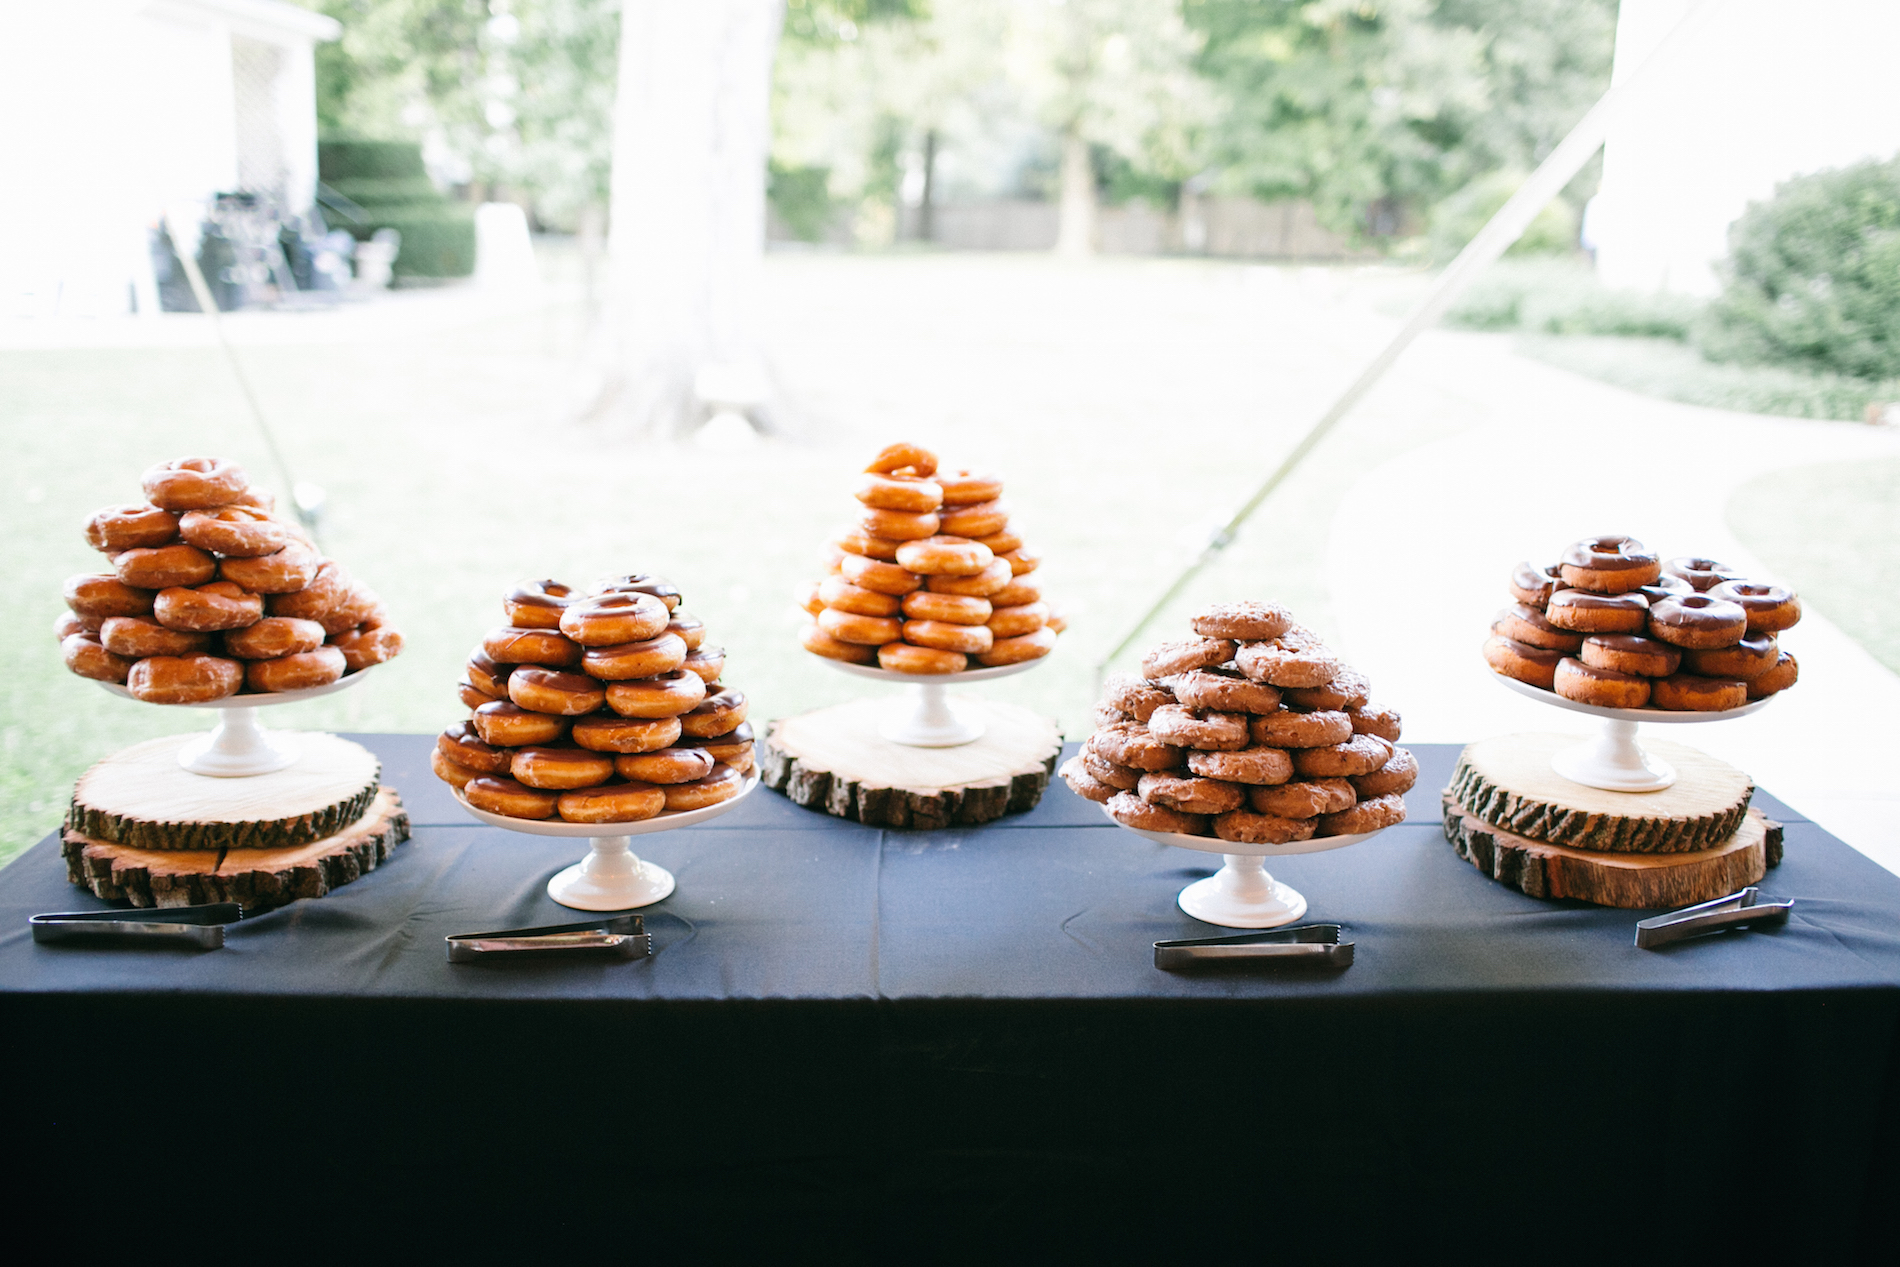 chic-marquee-wedding-lang-thomas-photography-38